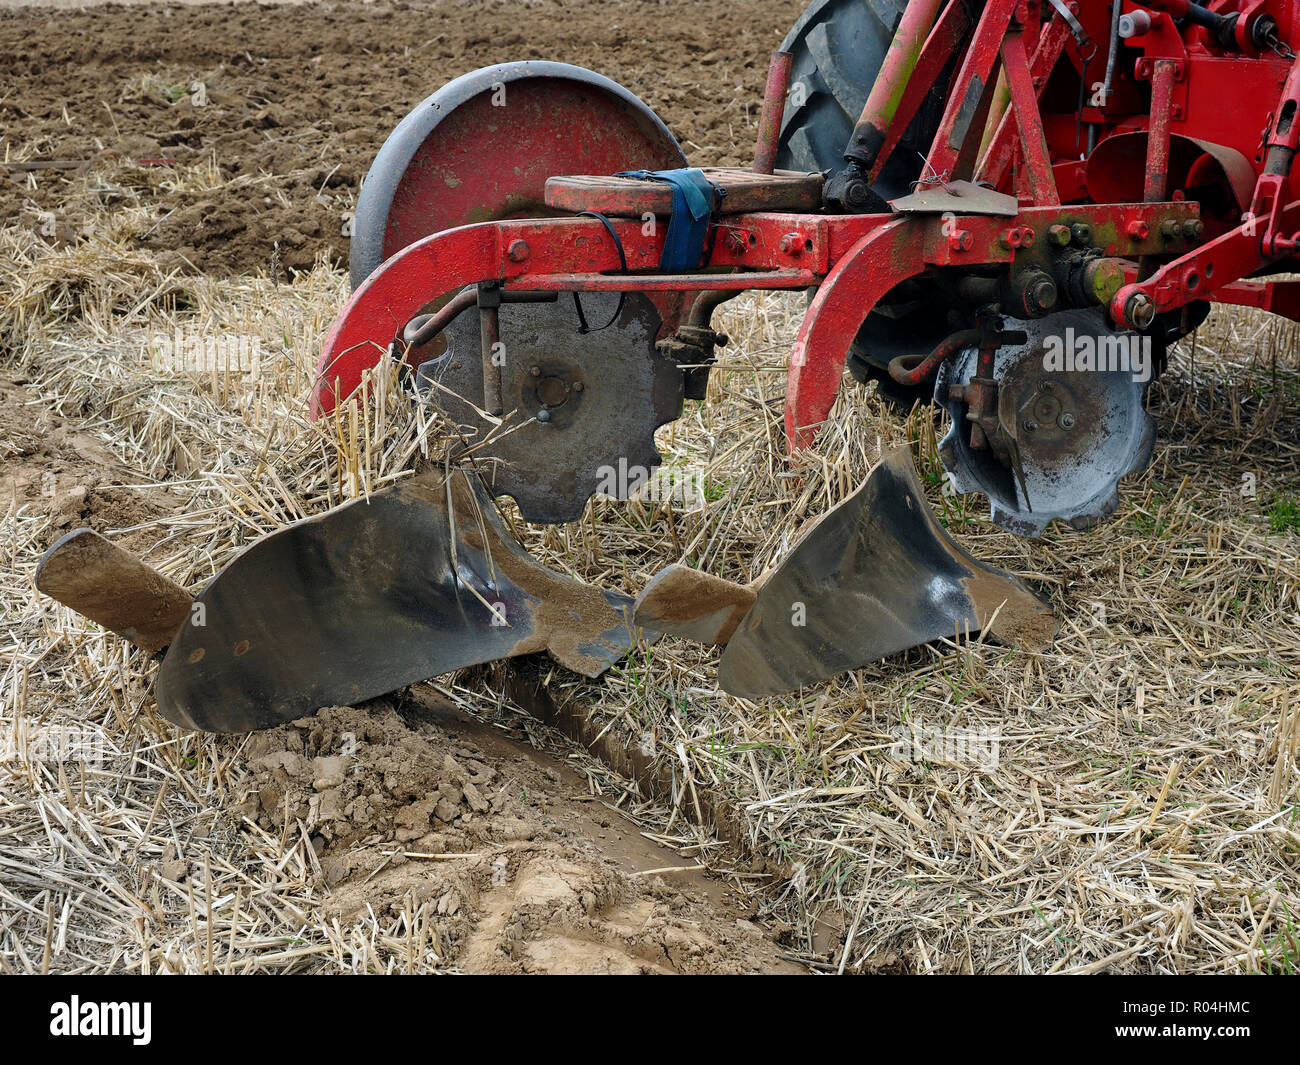 Massey-Ferguson two furrow plough from the 1960's. Stock Photo